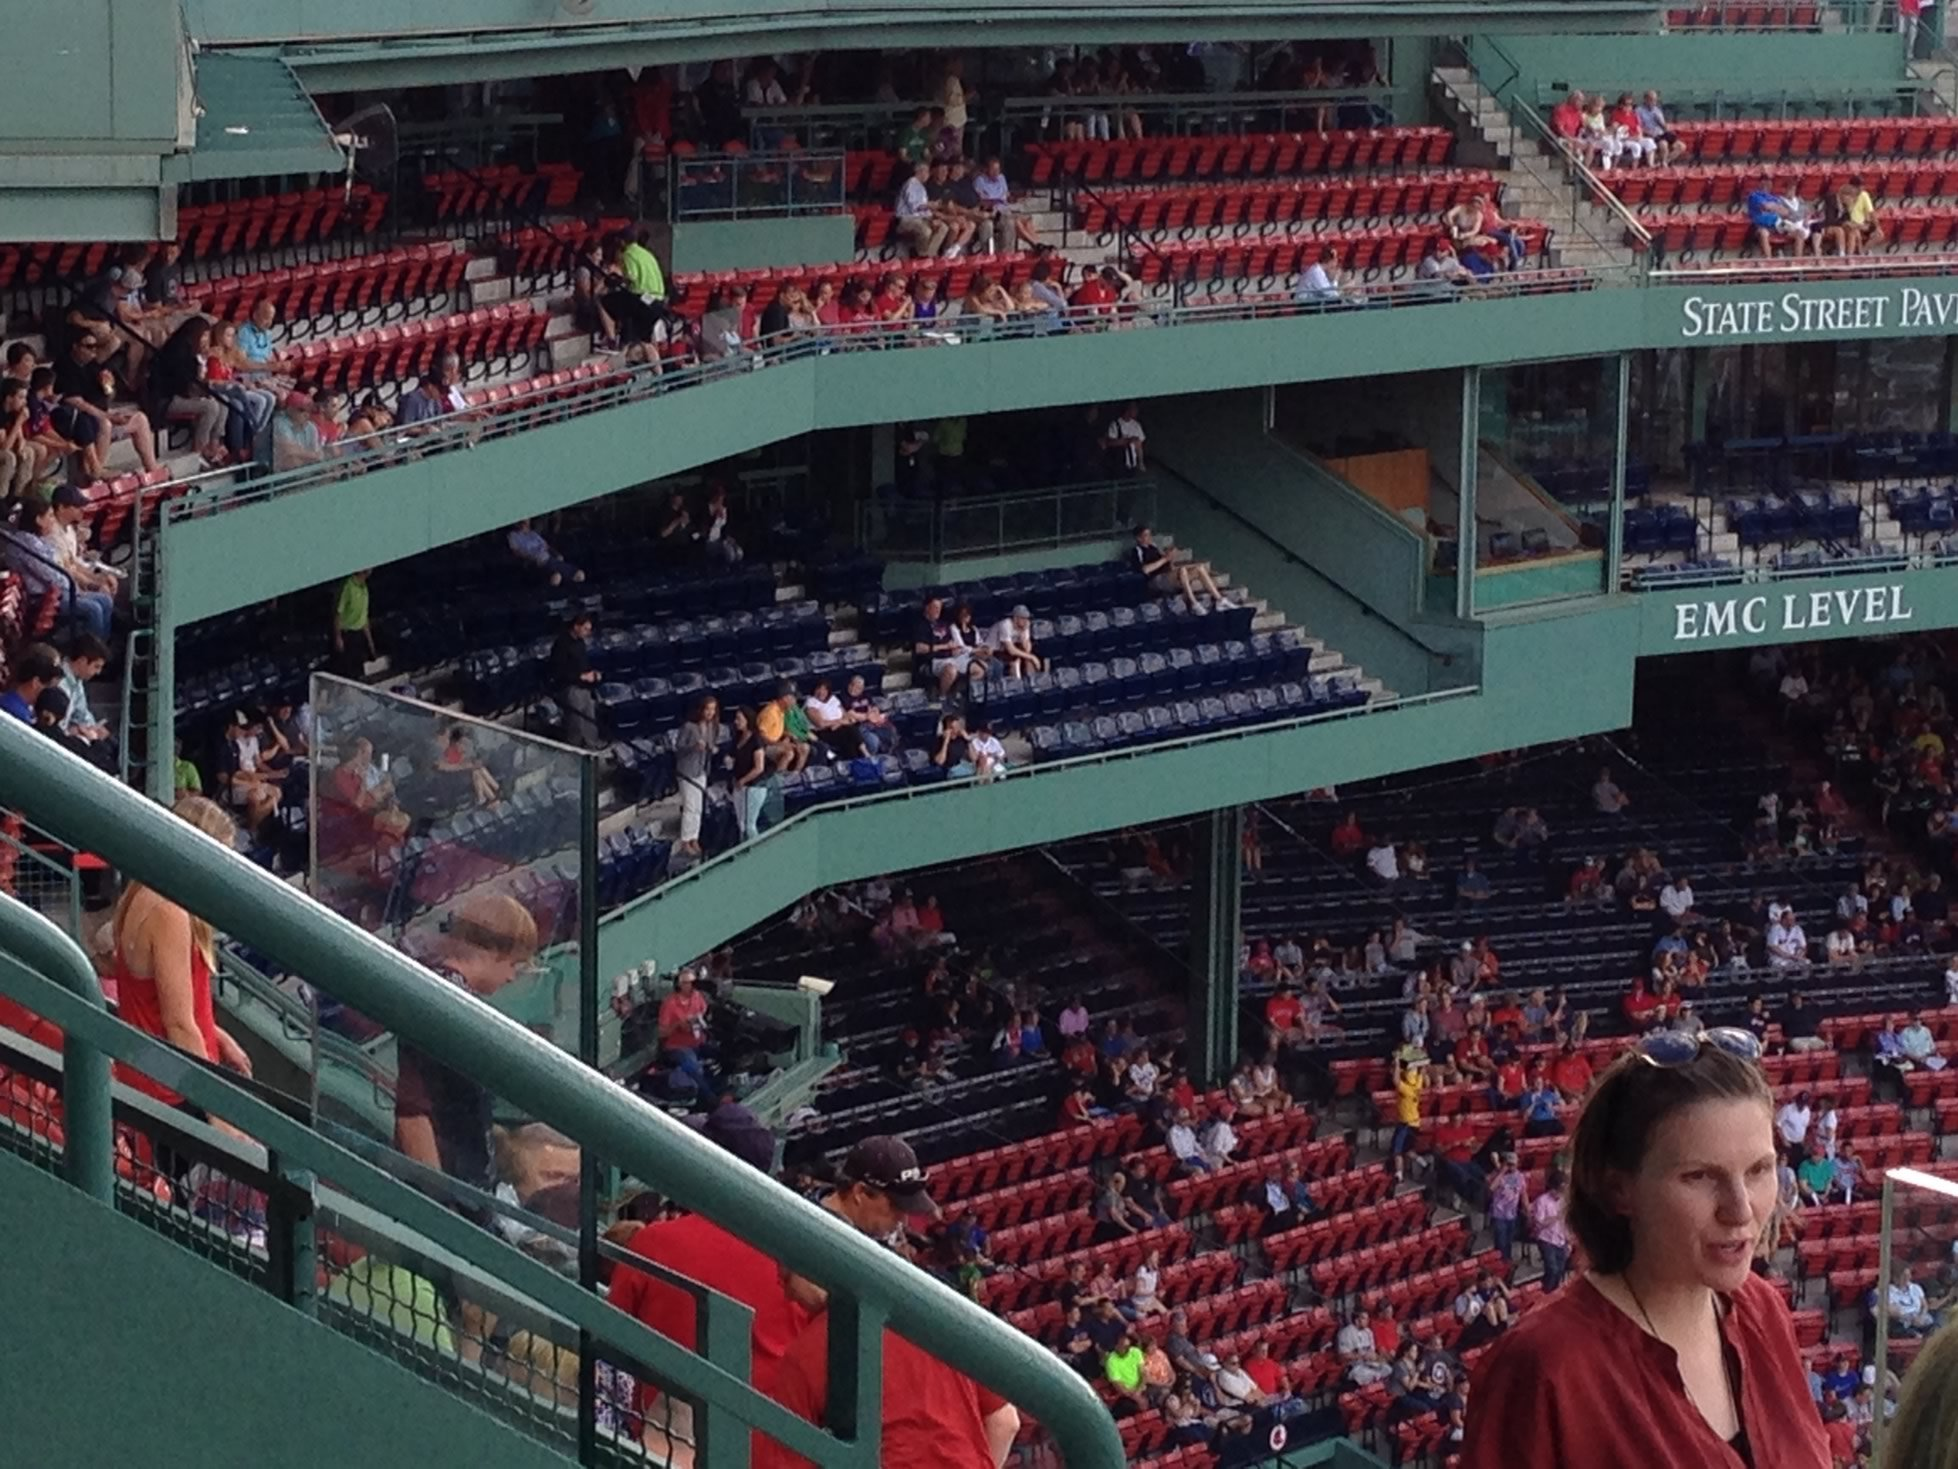 The EMC Club Seats Behind Home Plate Are Located Just Above Grandstand And Below Pavilion